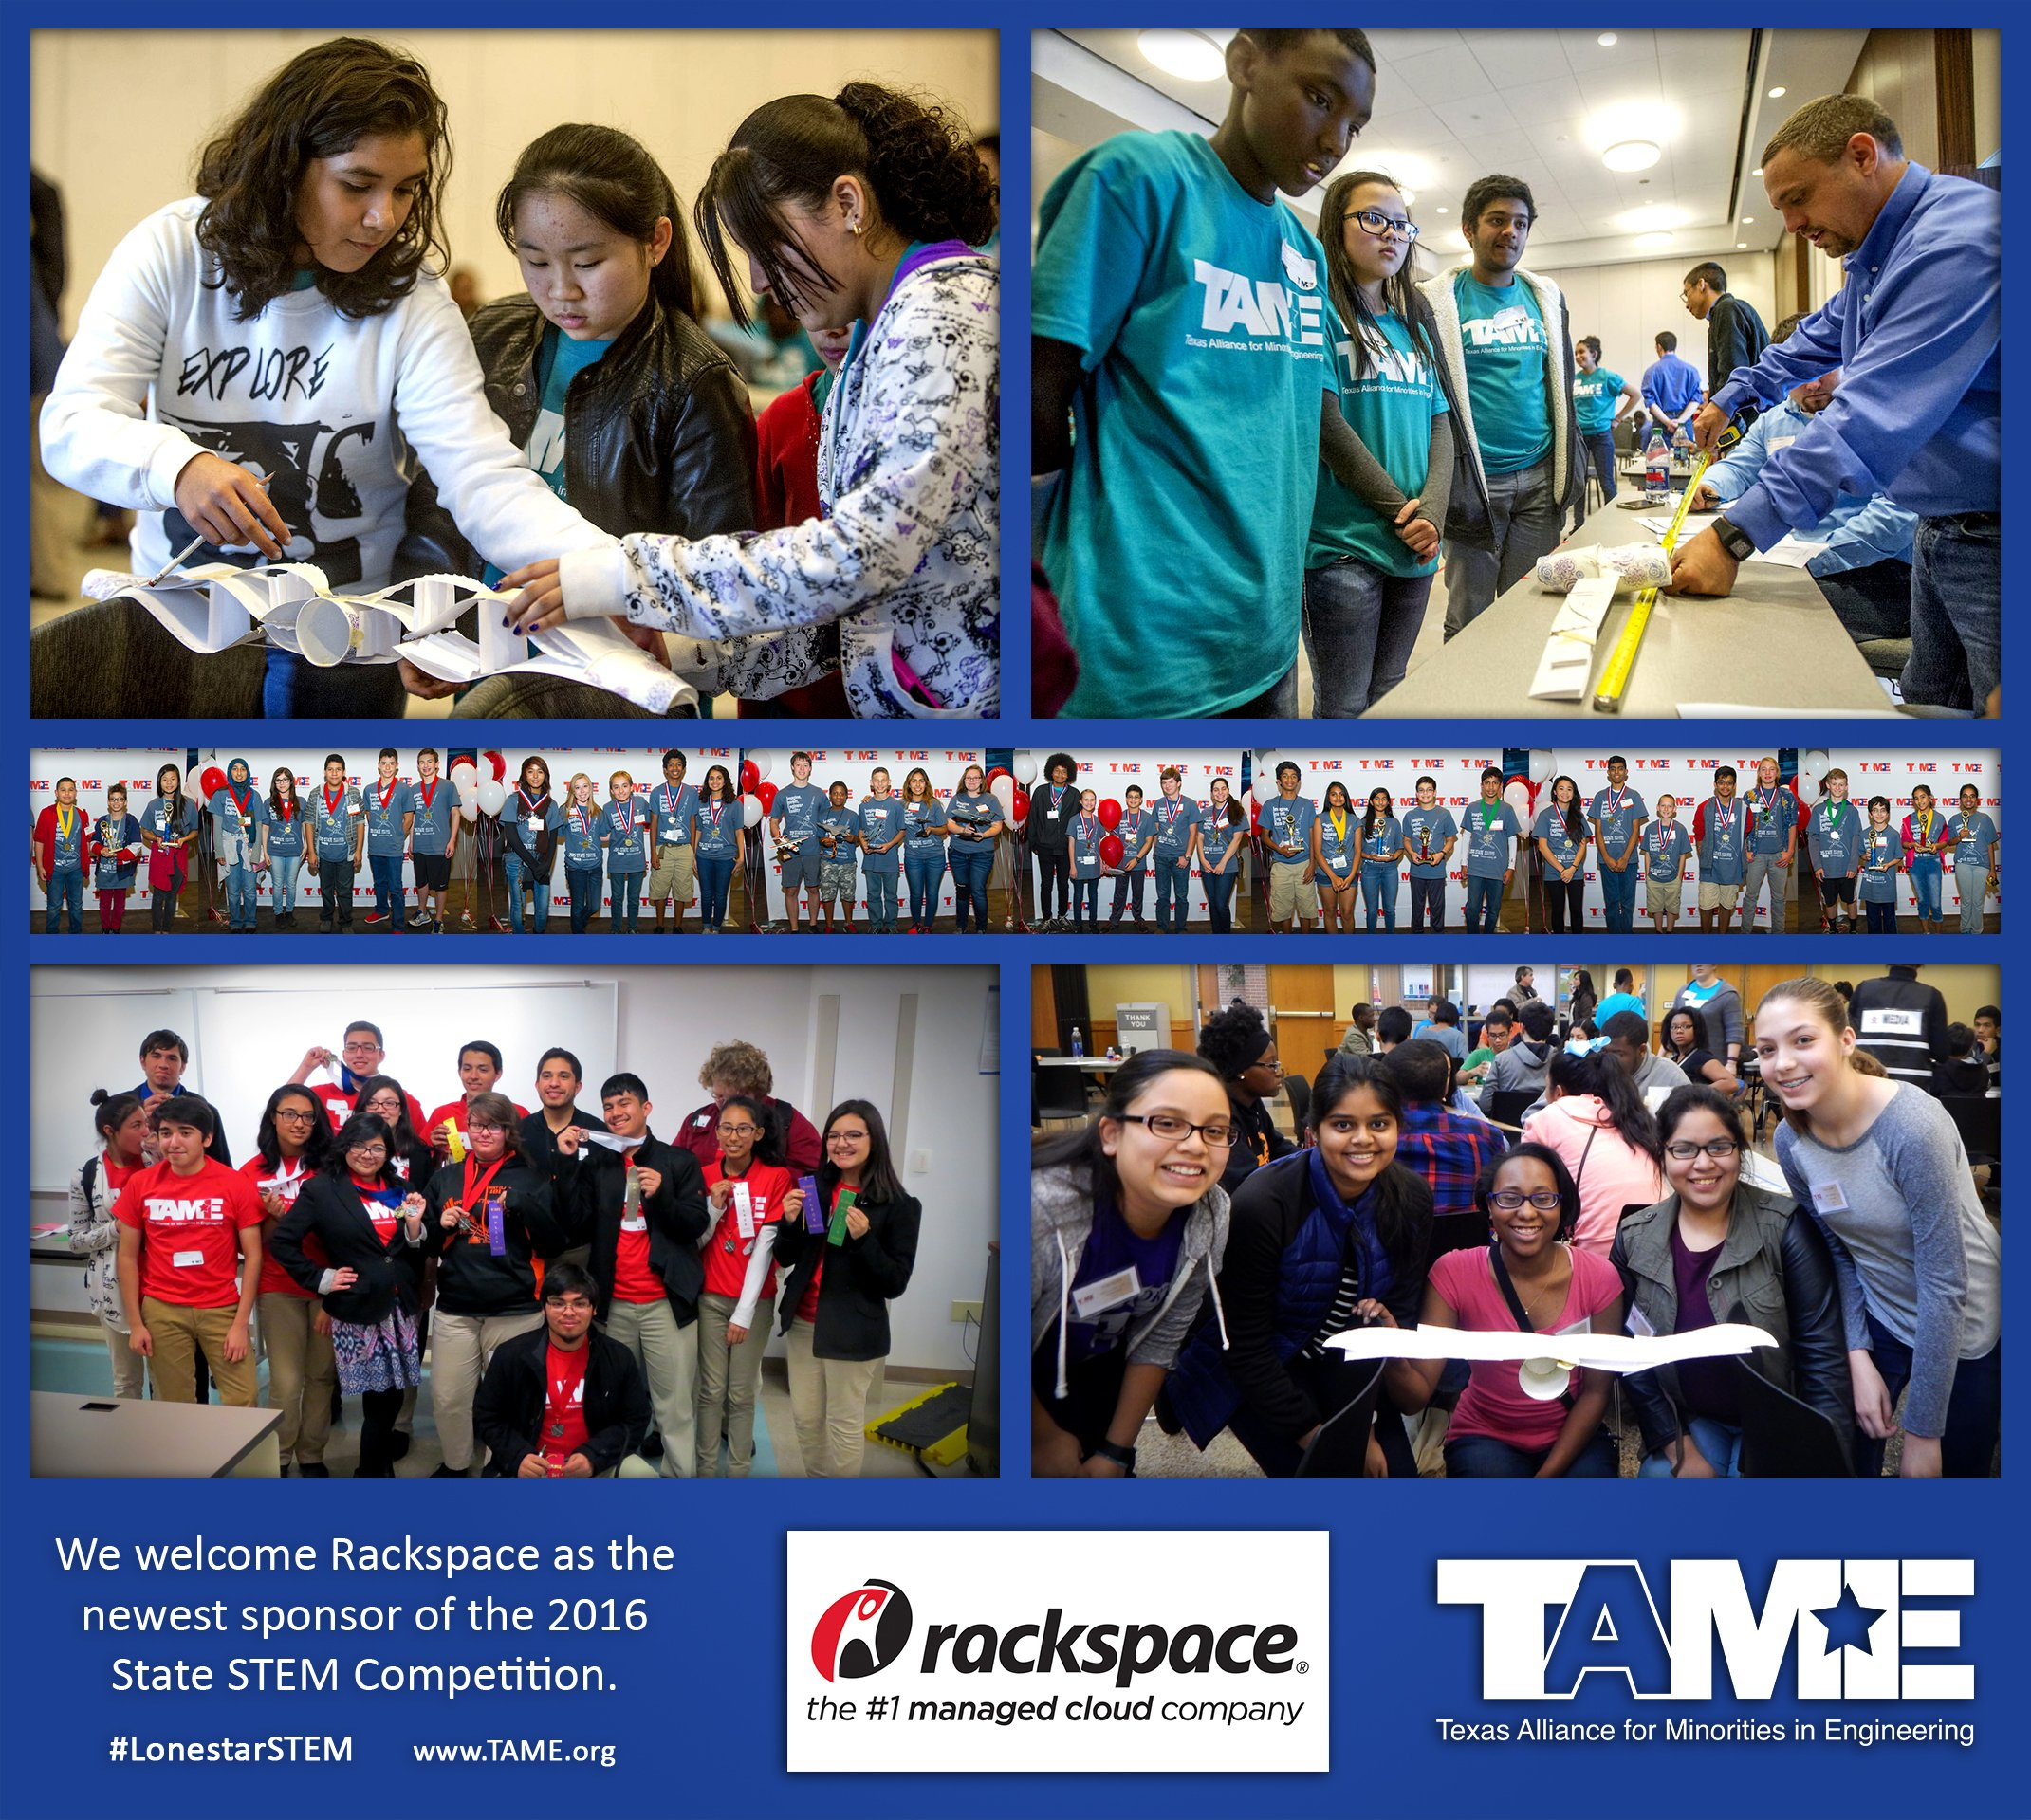 TAME Welcomes Rackspace as the newest sponsor of the 2016 State STEM Competition.